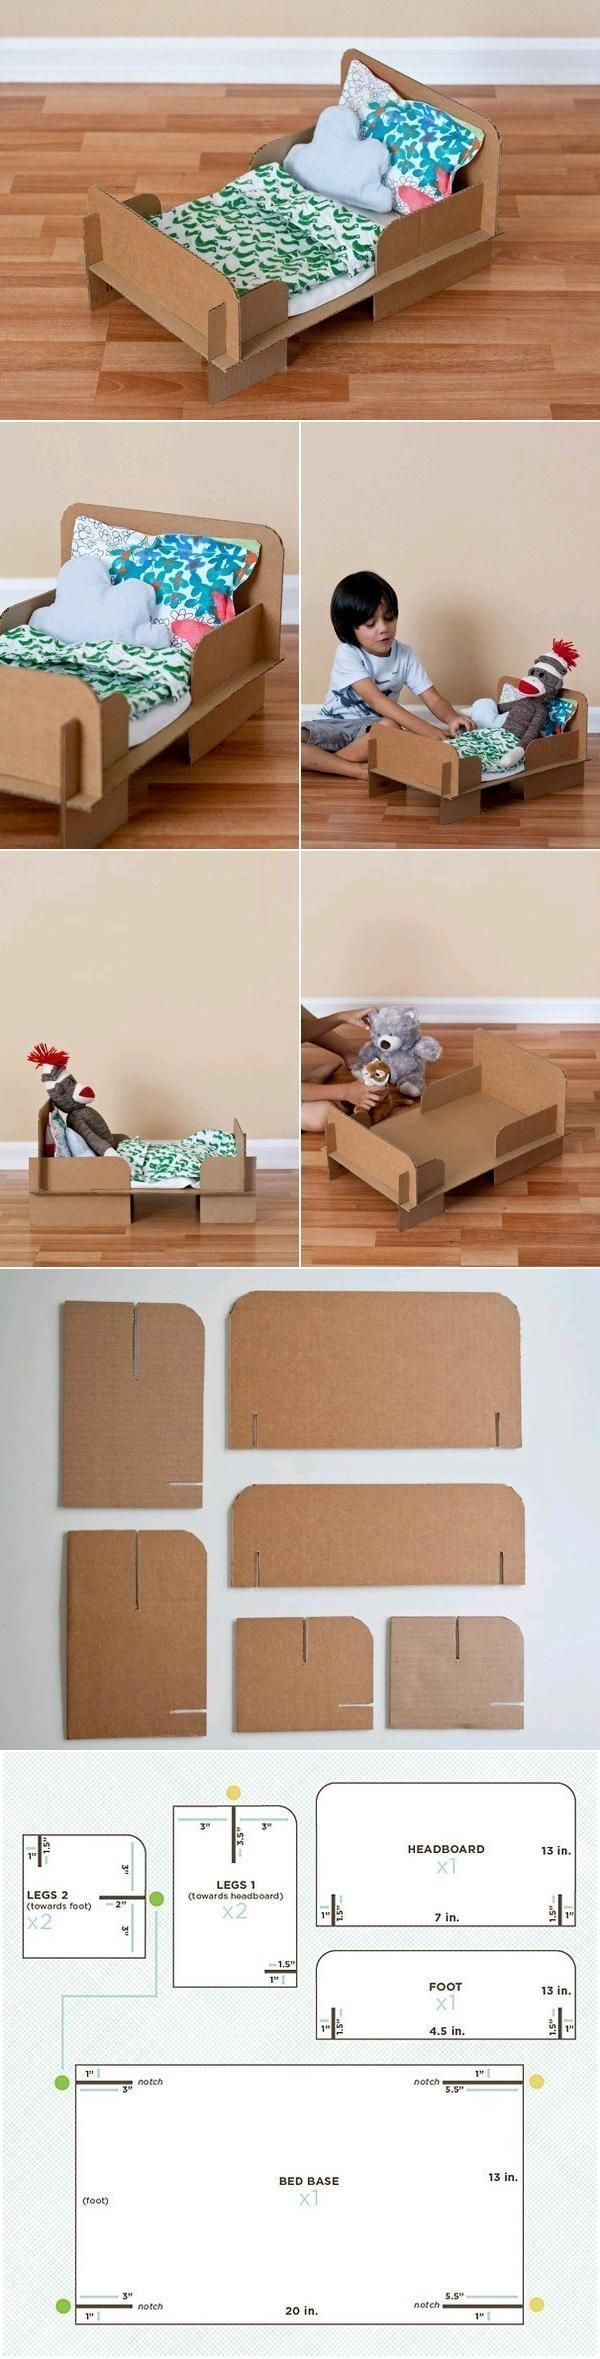 Cardboard bed can be used for a nice little dollhouse. You can really use these for other decorations as well. You may need about 20 minutes or so to make this little bed and then you can make more little furniture items...